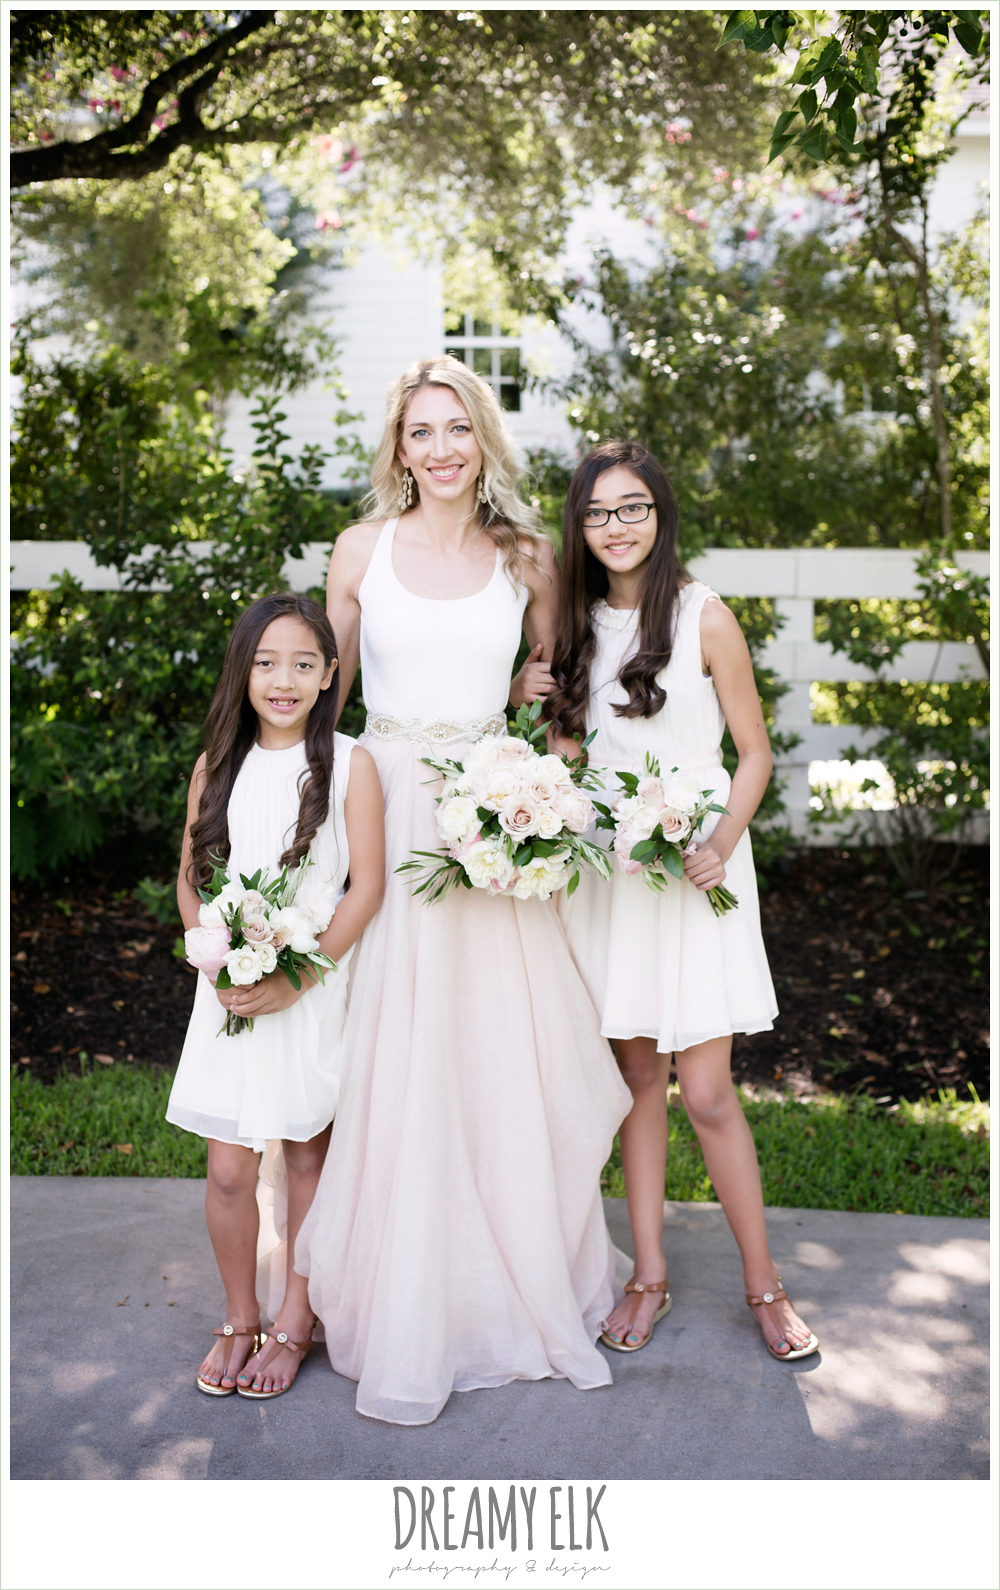 outdoor bridal party photo, bride and bridesmaids, jcrew girls dresses, southern protocol bridal boutique, haute bride belt, carol hannah kensington halter and blush skirt, july summer morning wedding, ashelynn manor, magnolia, texas {dreamy elk photography and design}